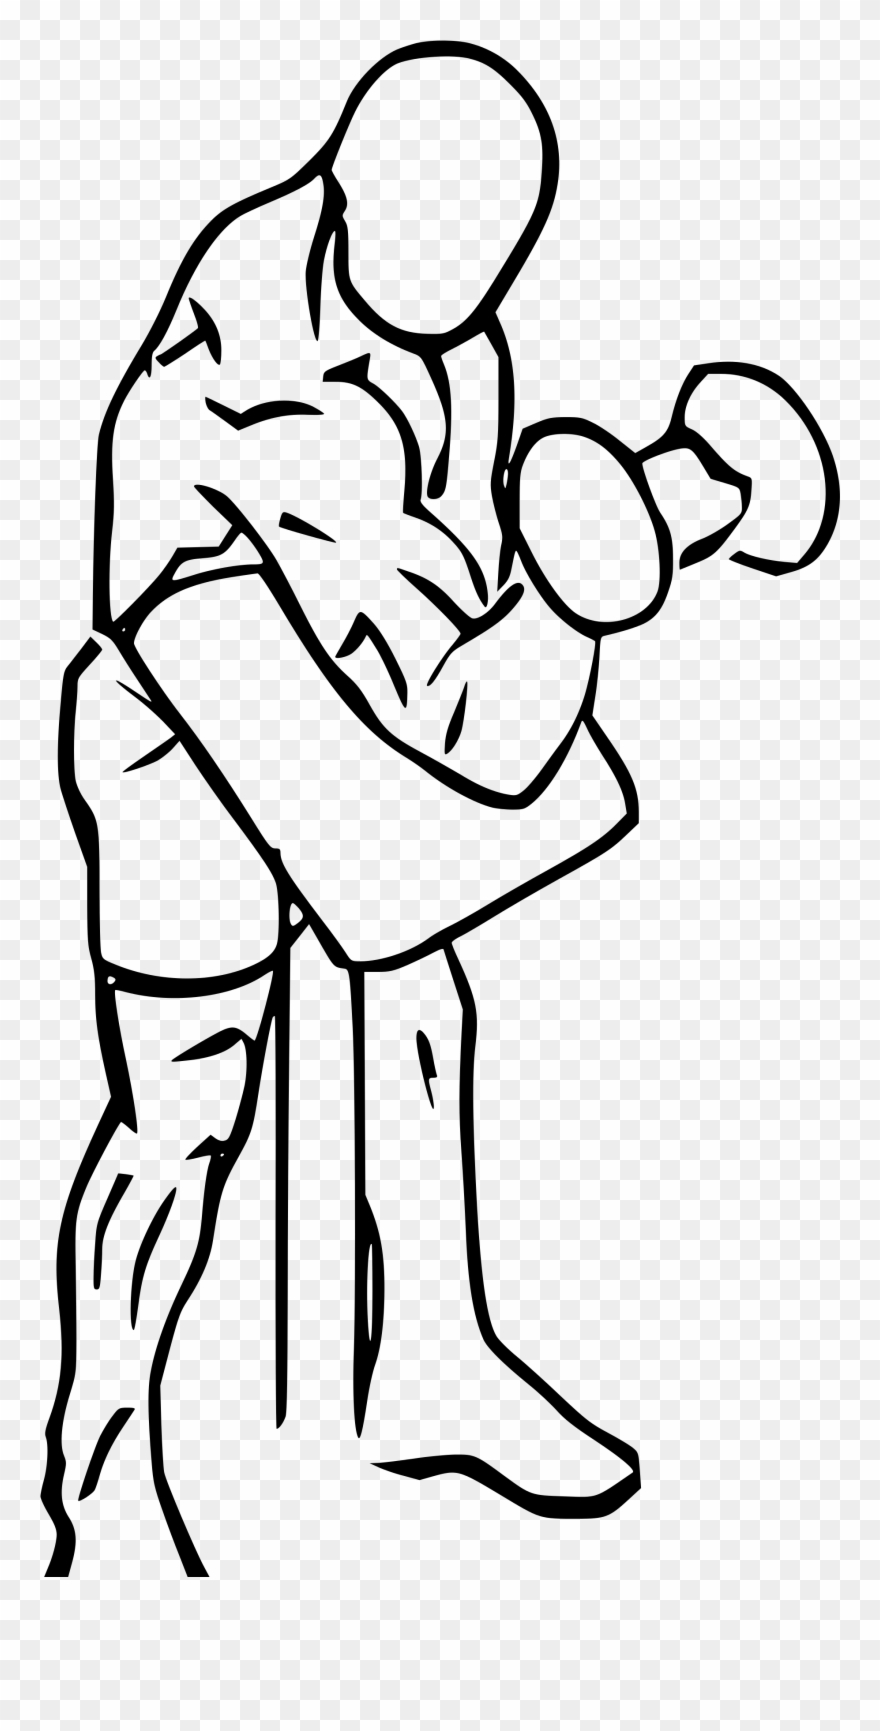 medium resolution of preacher drawing at getdrawings compound bicep exercises clipart